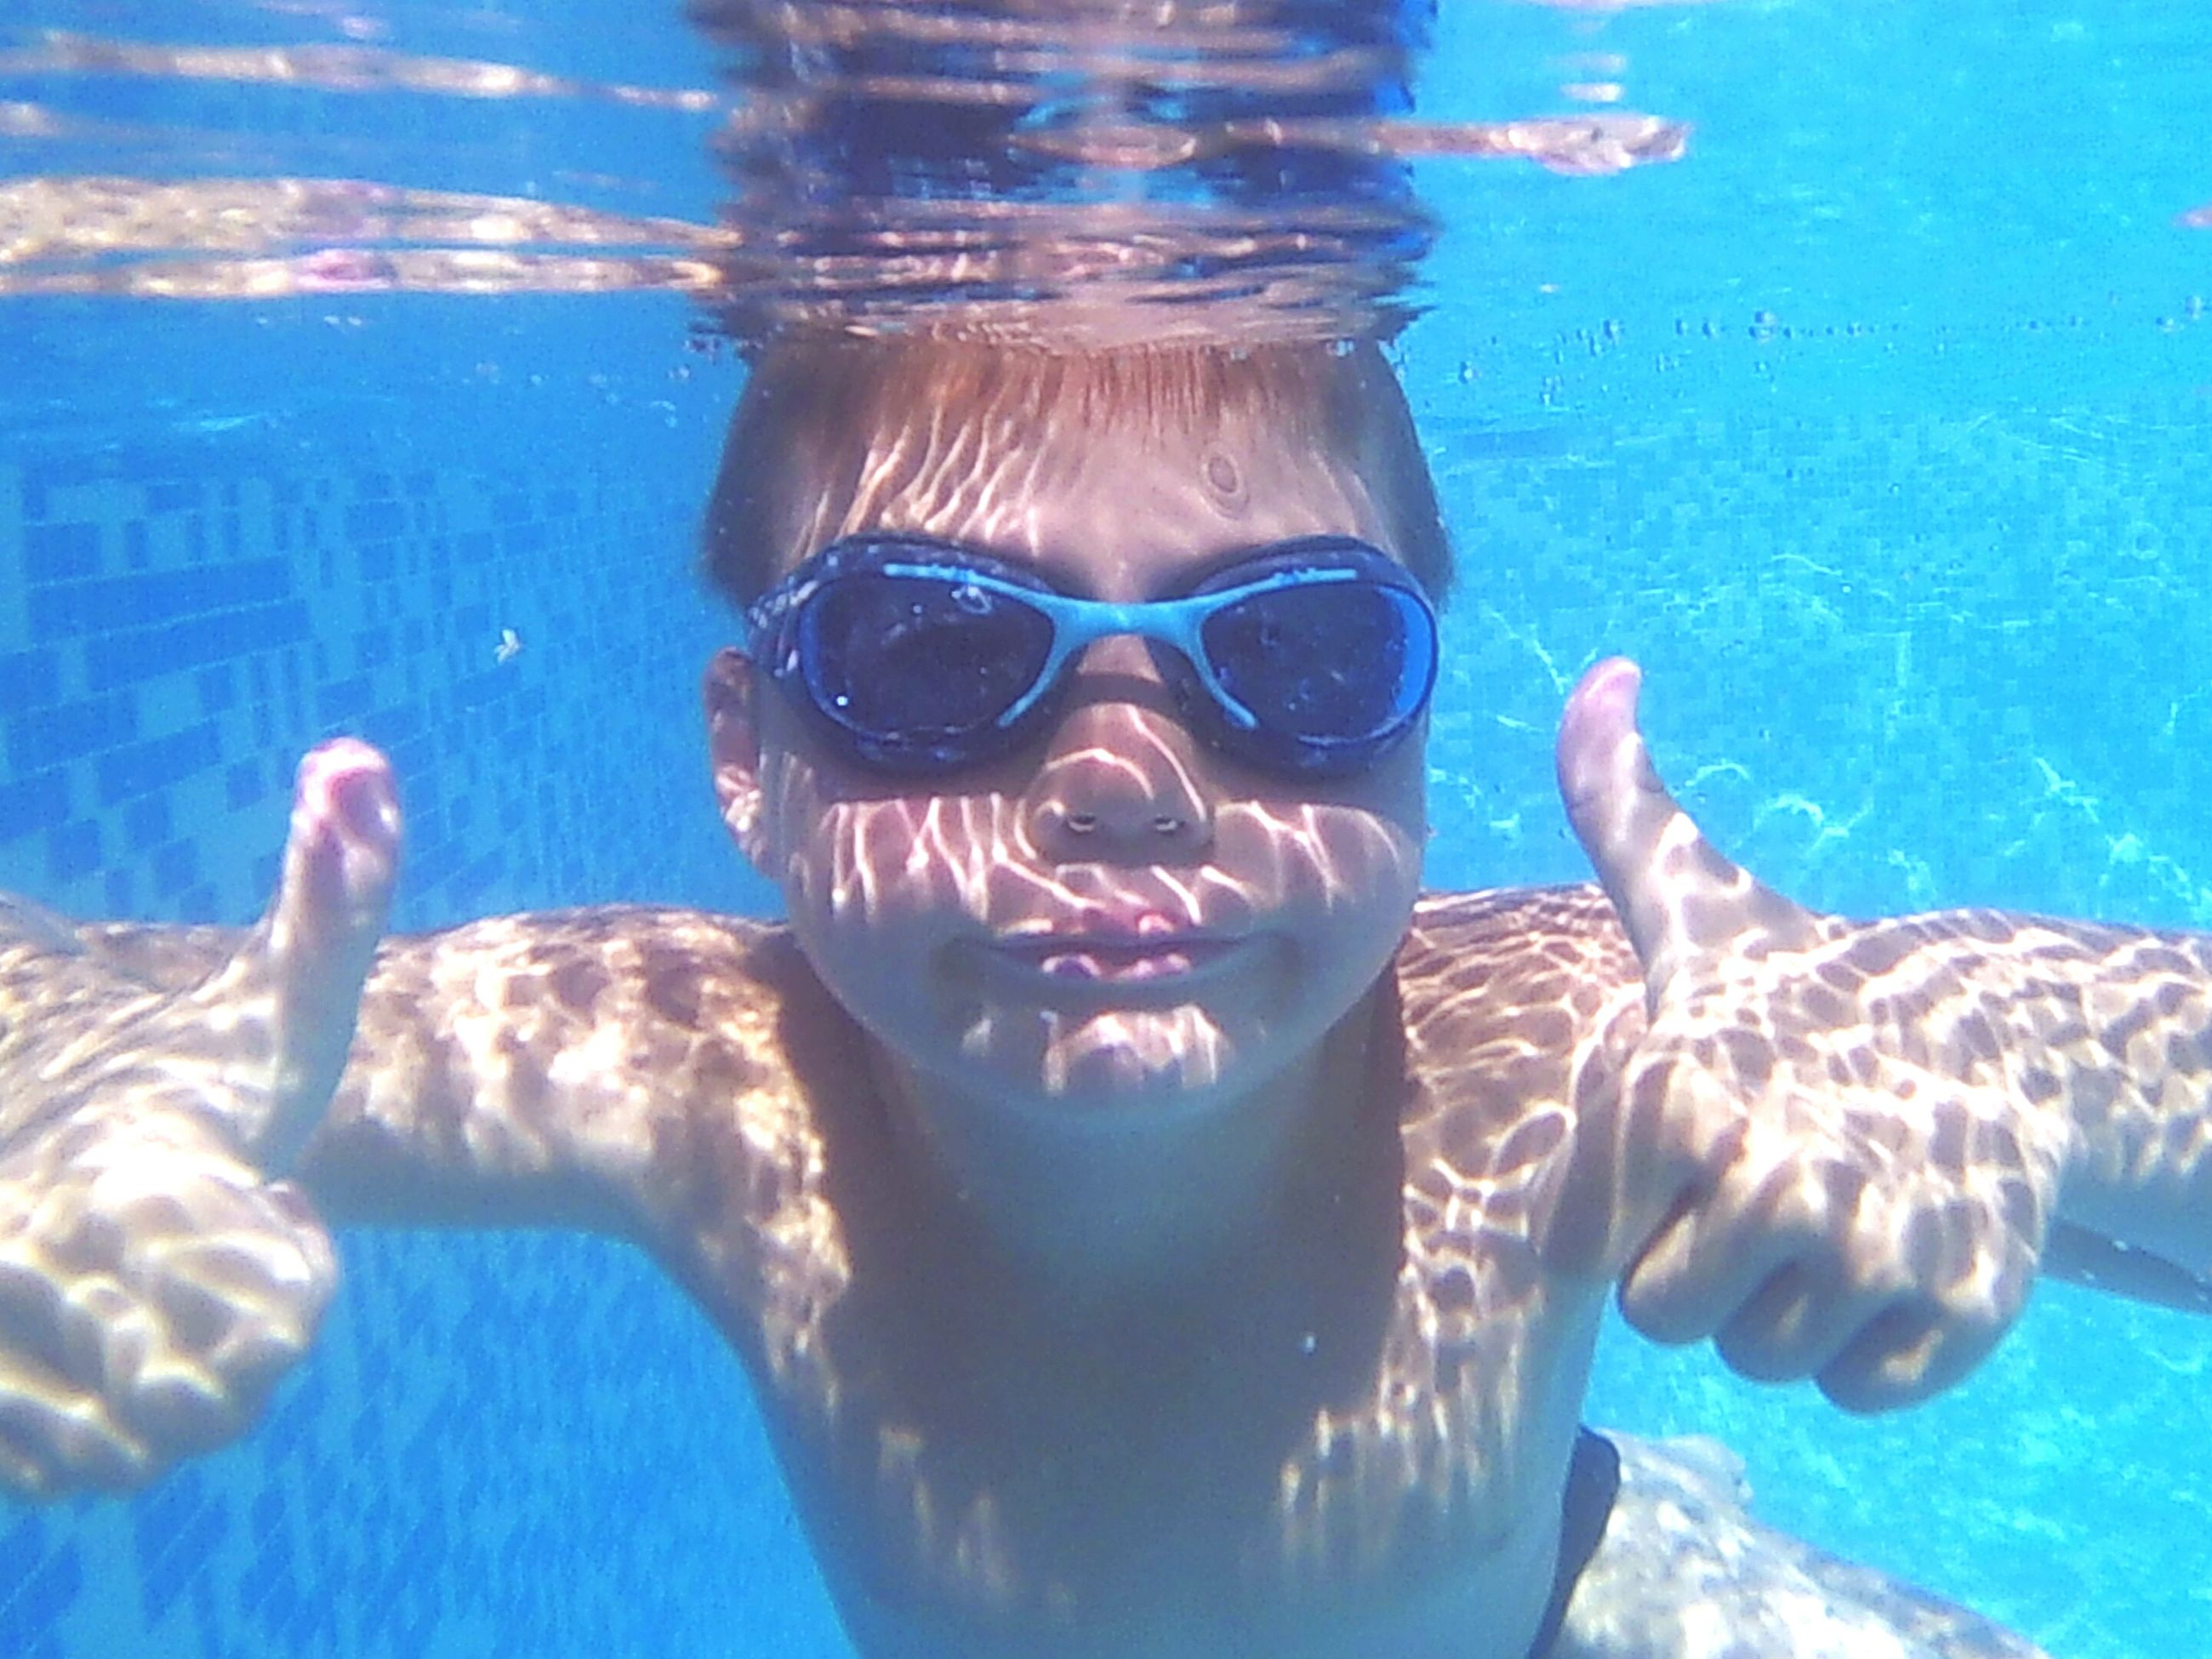 water, animal themes, swimming, blue, swimming pool, underwater, portrait, looking at camera, sea, animals in the wild, sunlight, leisure activity, person, wildlife, undersea, fish, front view, togetherness